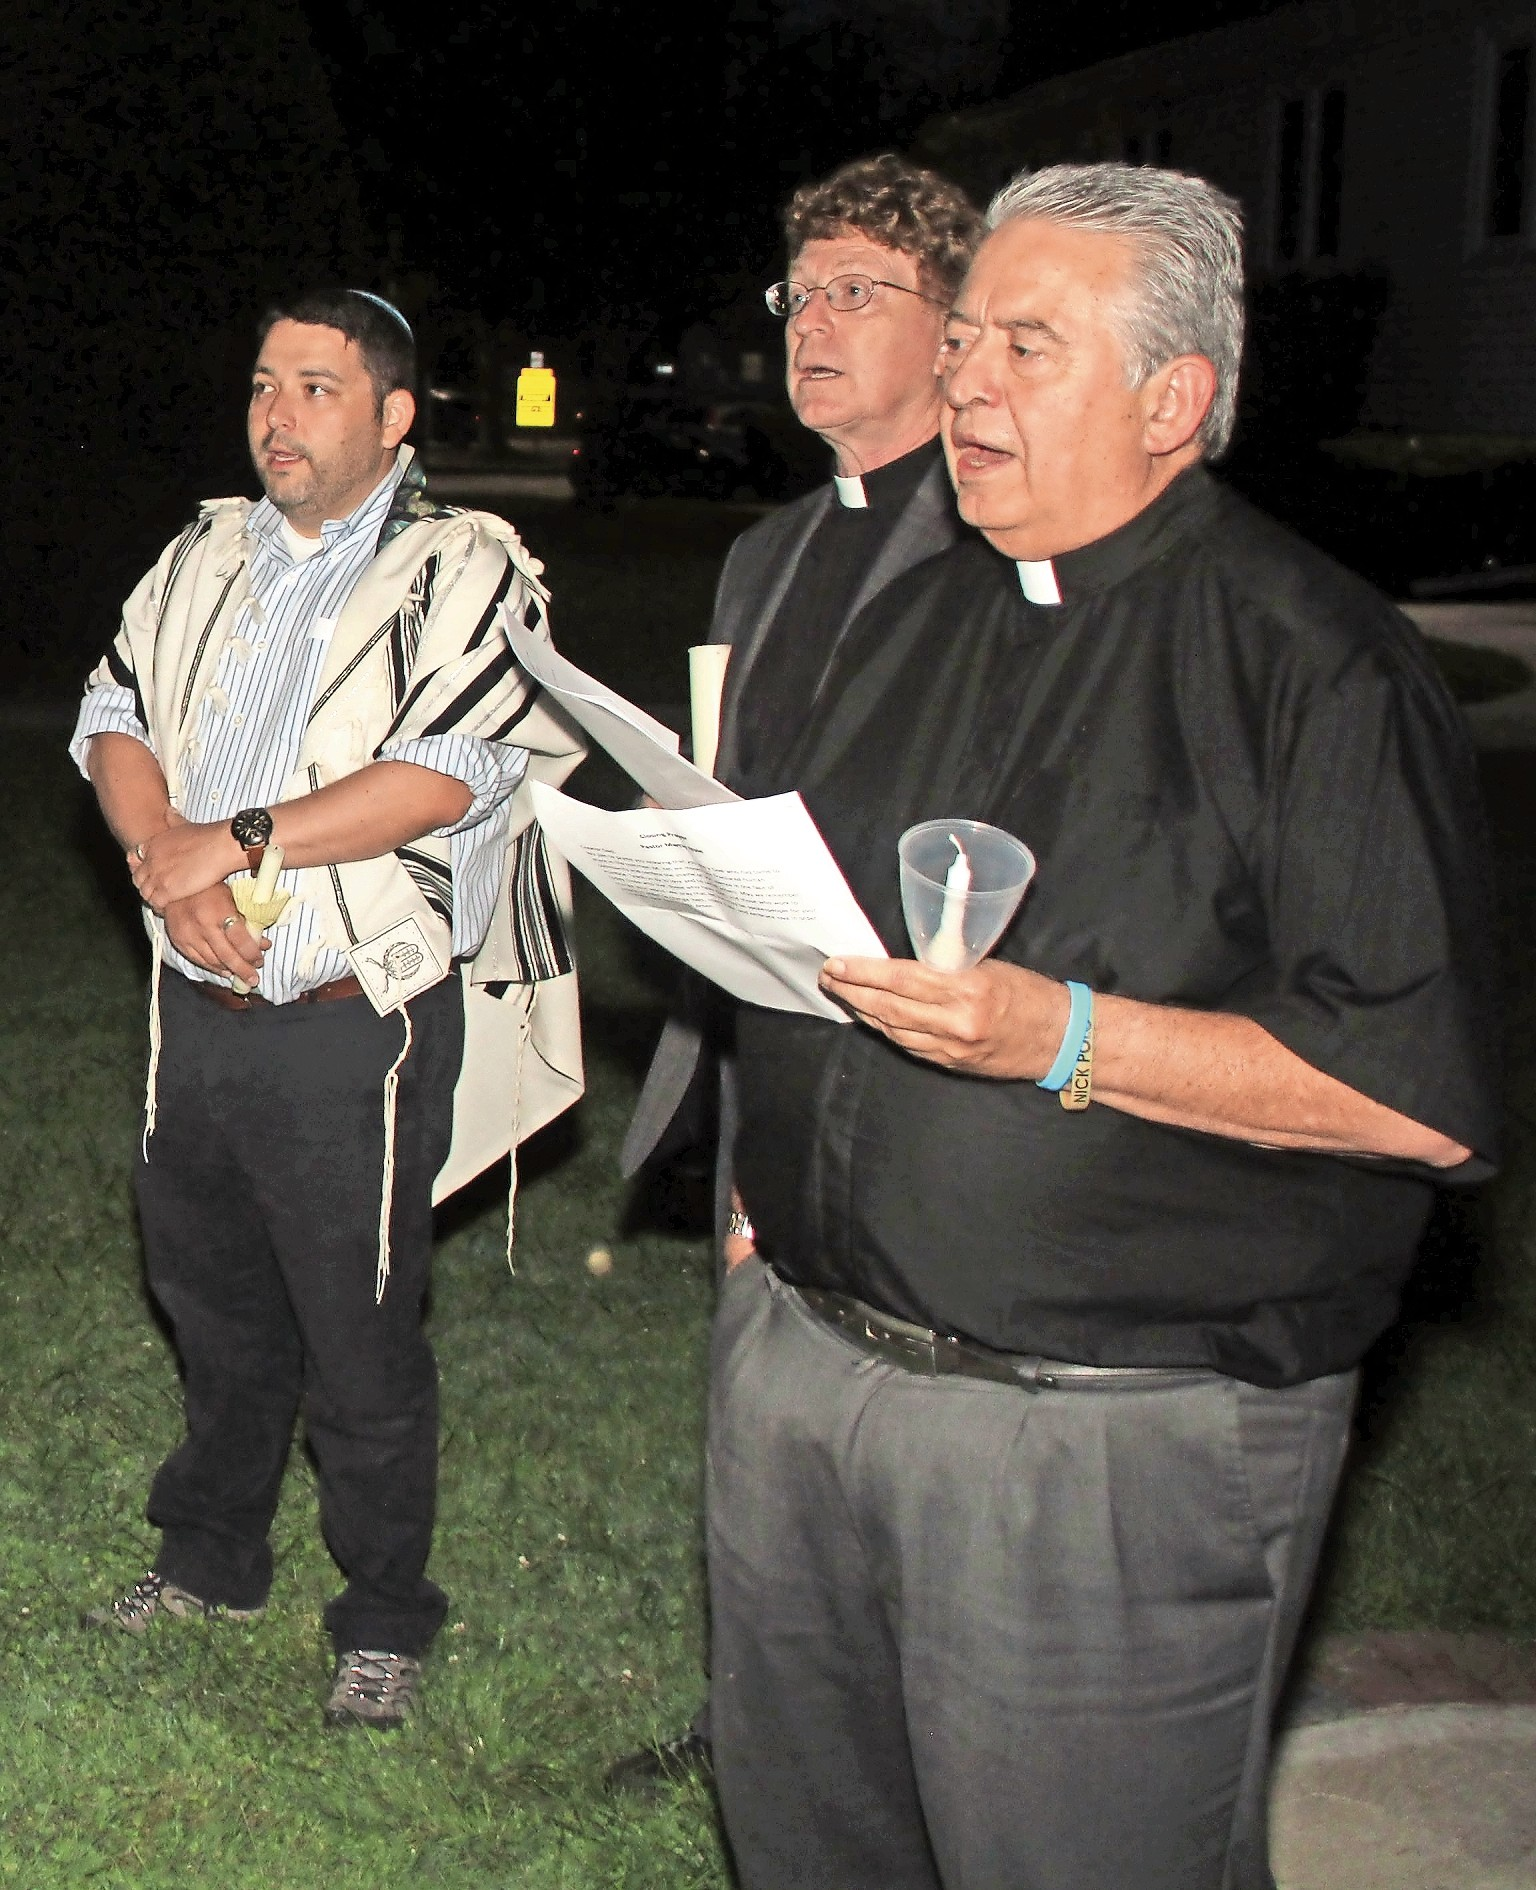 Rabbi Daniel Bar-Nahum, far left, of Temple Emanu-El of East Meadow; the Rev. Martin Nale, pastor of Christ Lutheran Church of Wantagh; and the Rev. Gregory Cappuccino, pastor of St. Frances de Chantal Roman Catholic Church, in Wantagh, sang the national anthem.